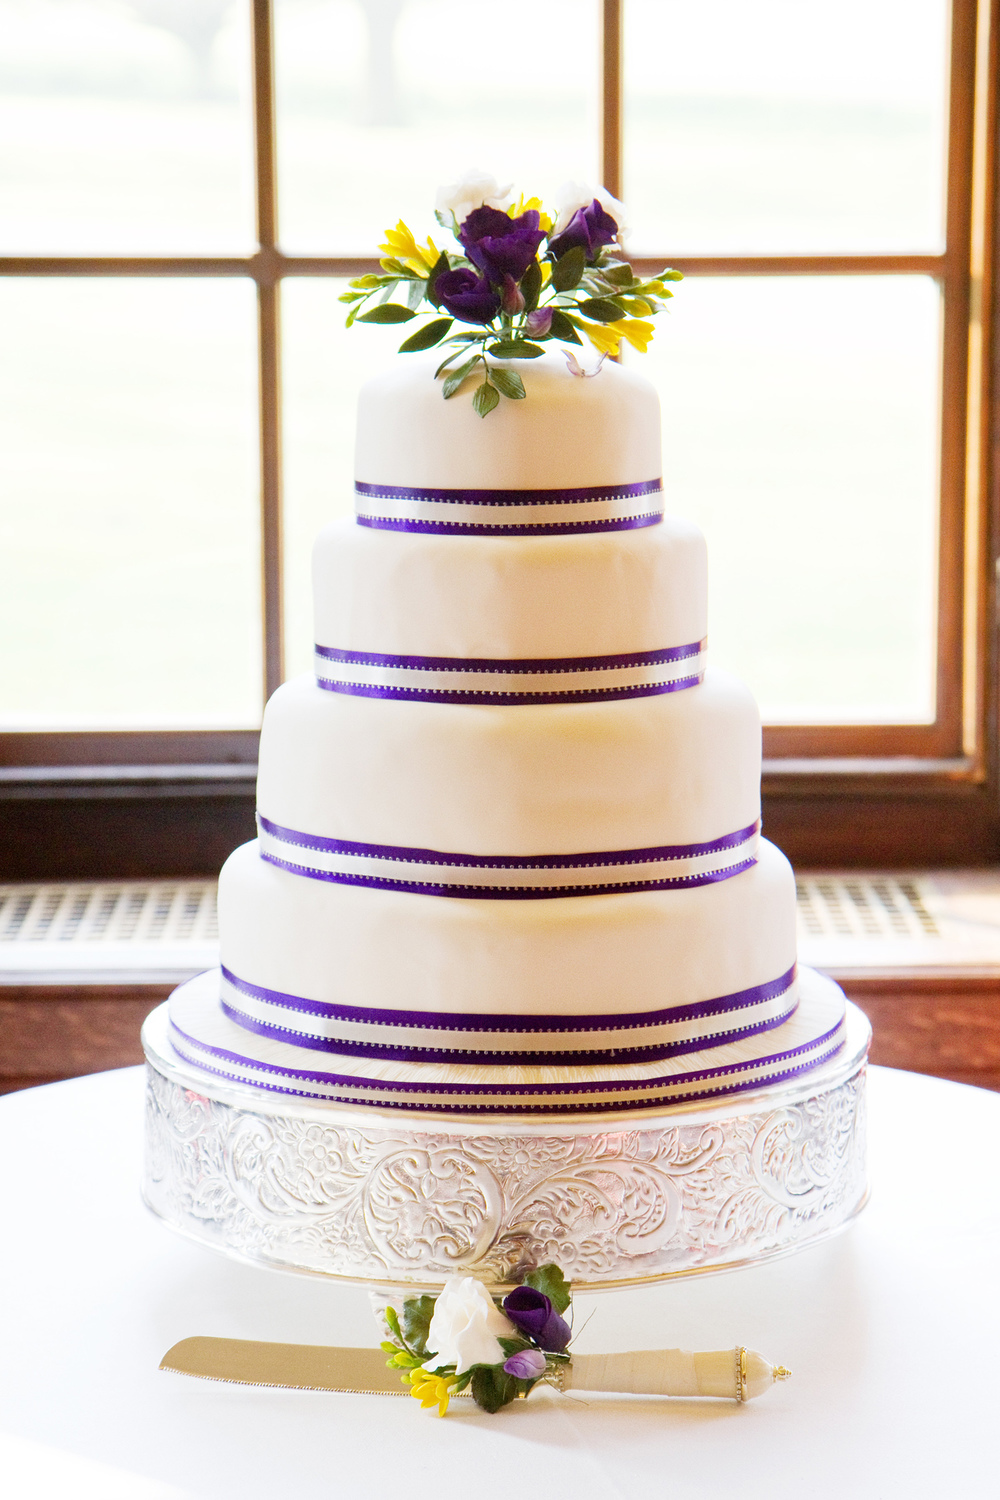 Four Tiered Wedding Cake, Helen England Photography, Kent, U.K